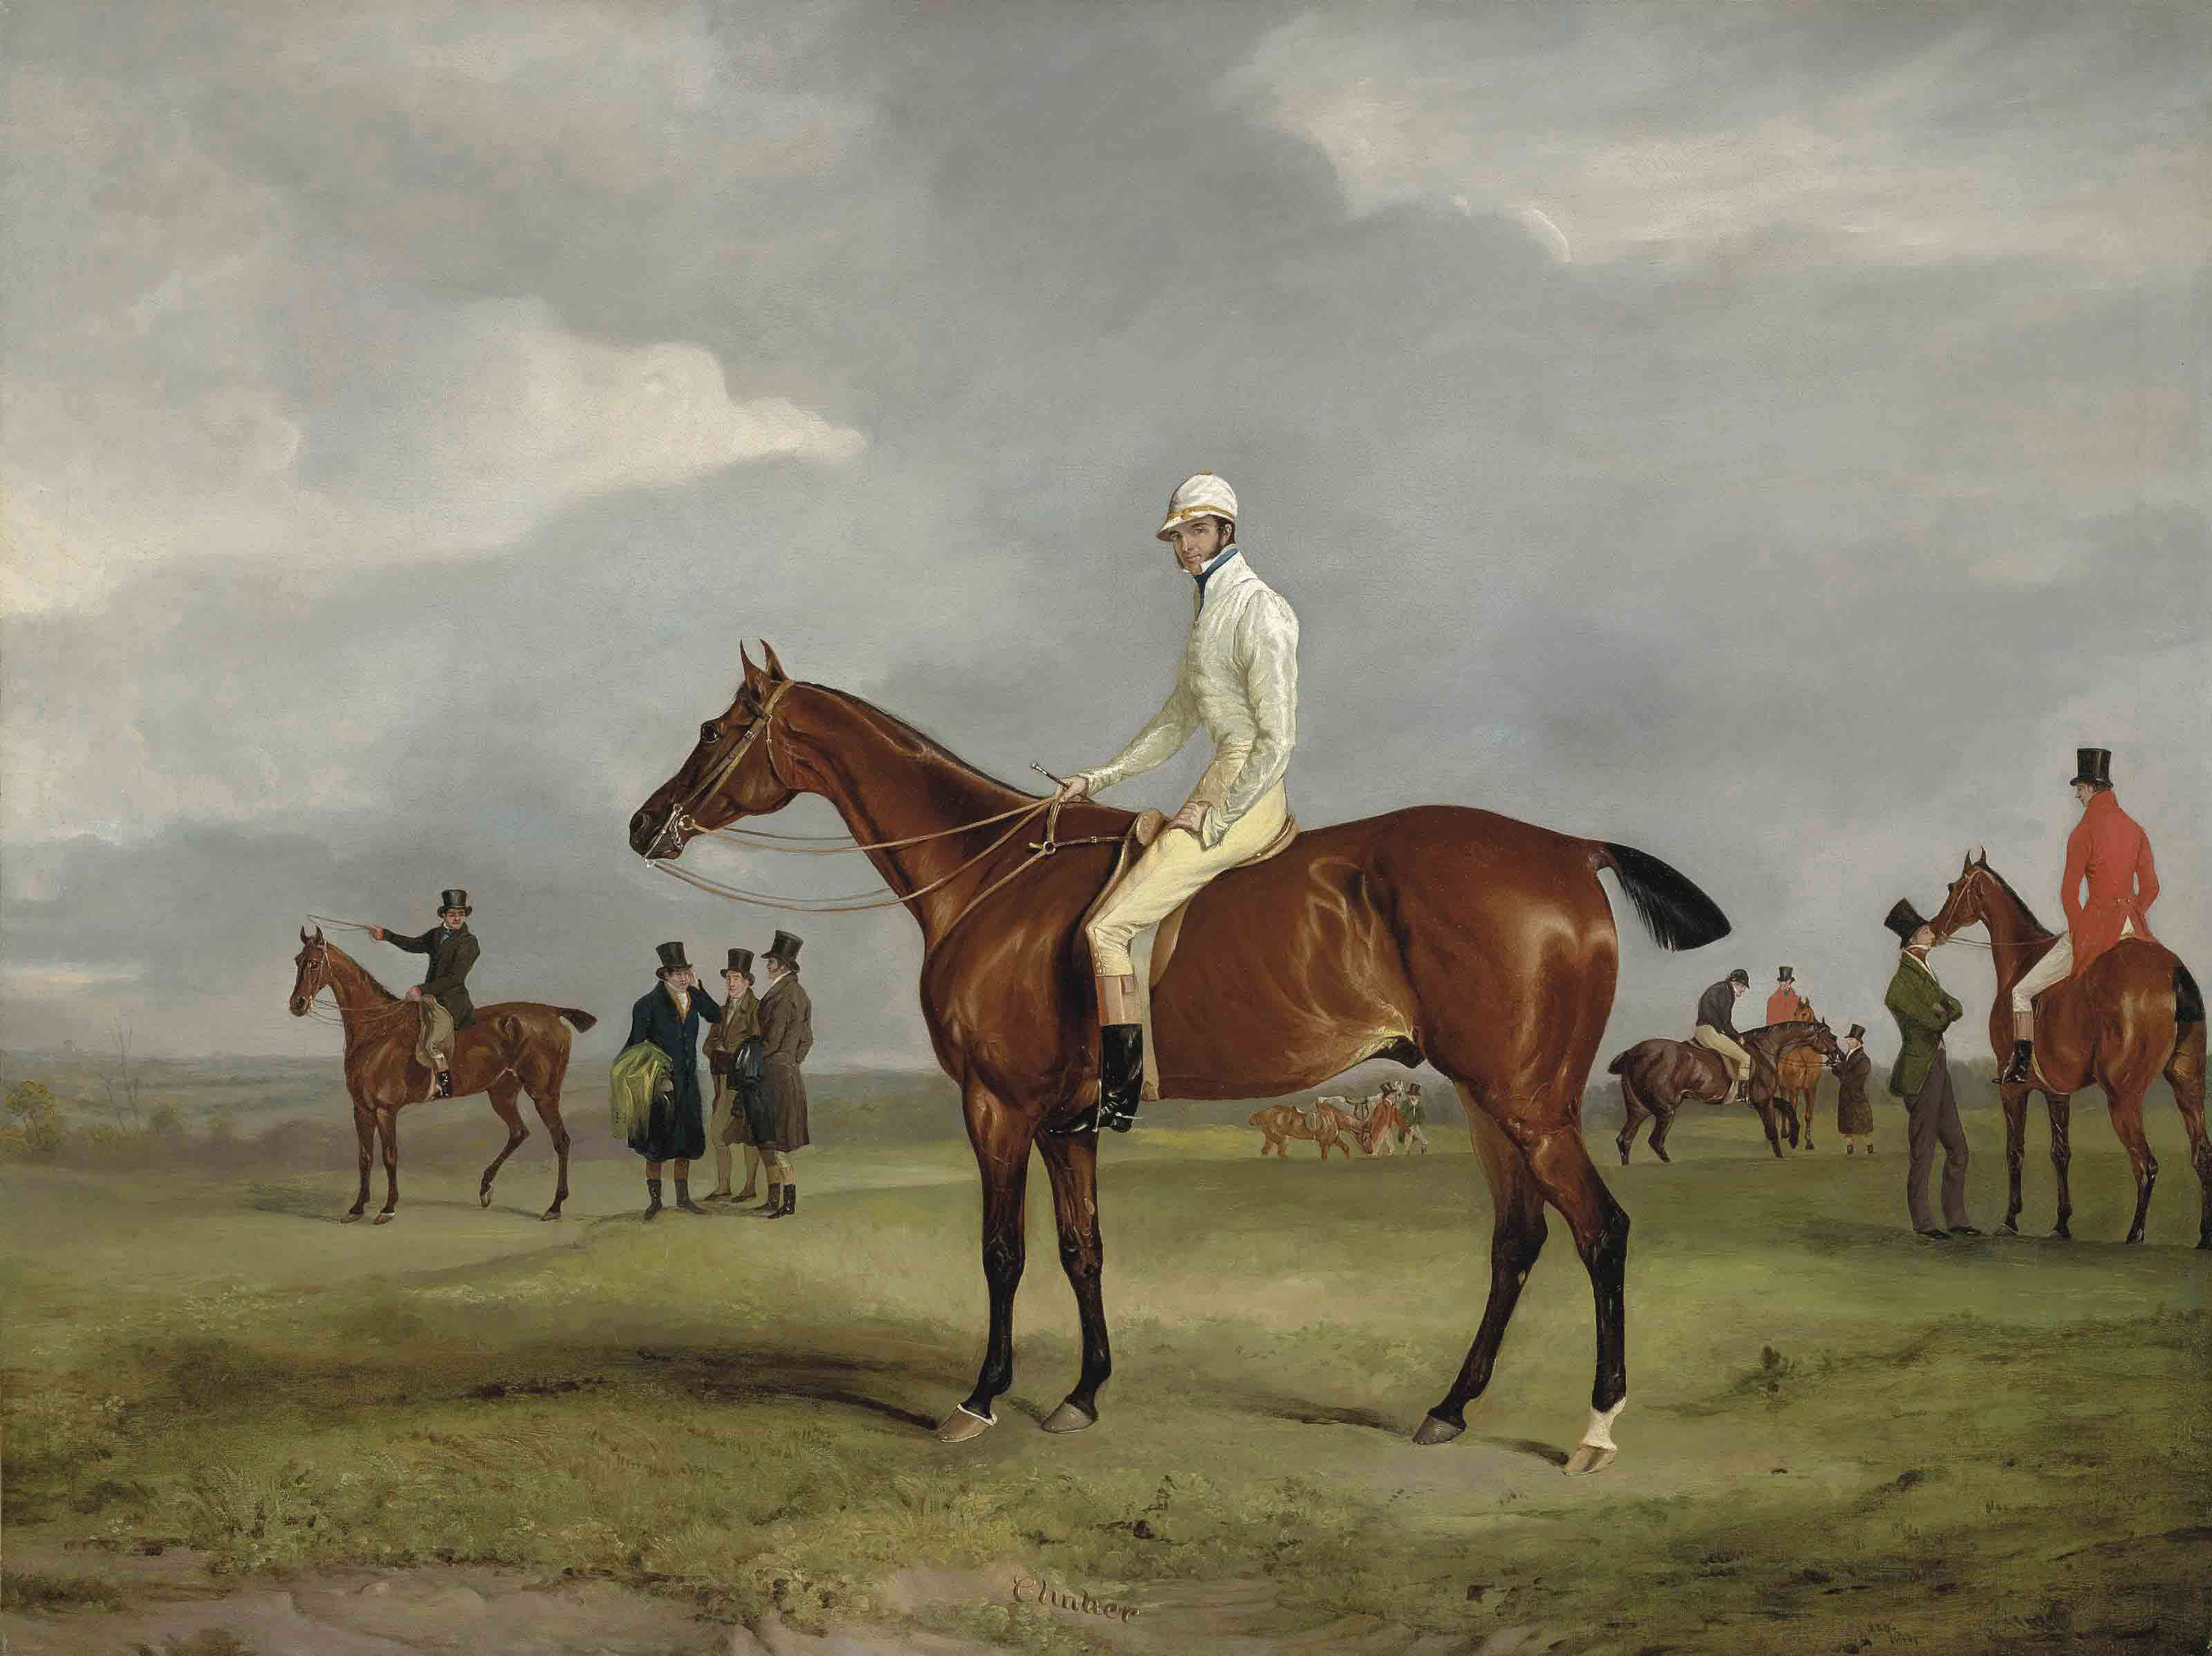 Clinker with Captain Horatio Ross up, Radical with Captain Douglas up and other horses beyond